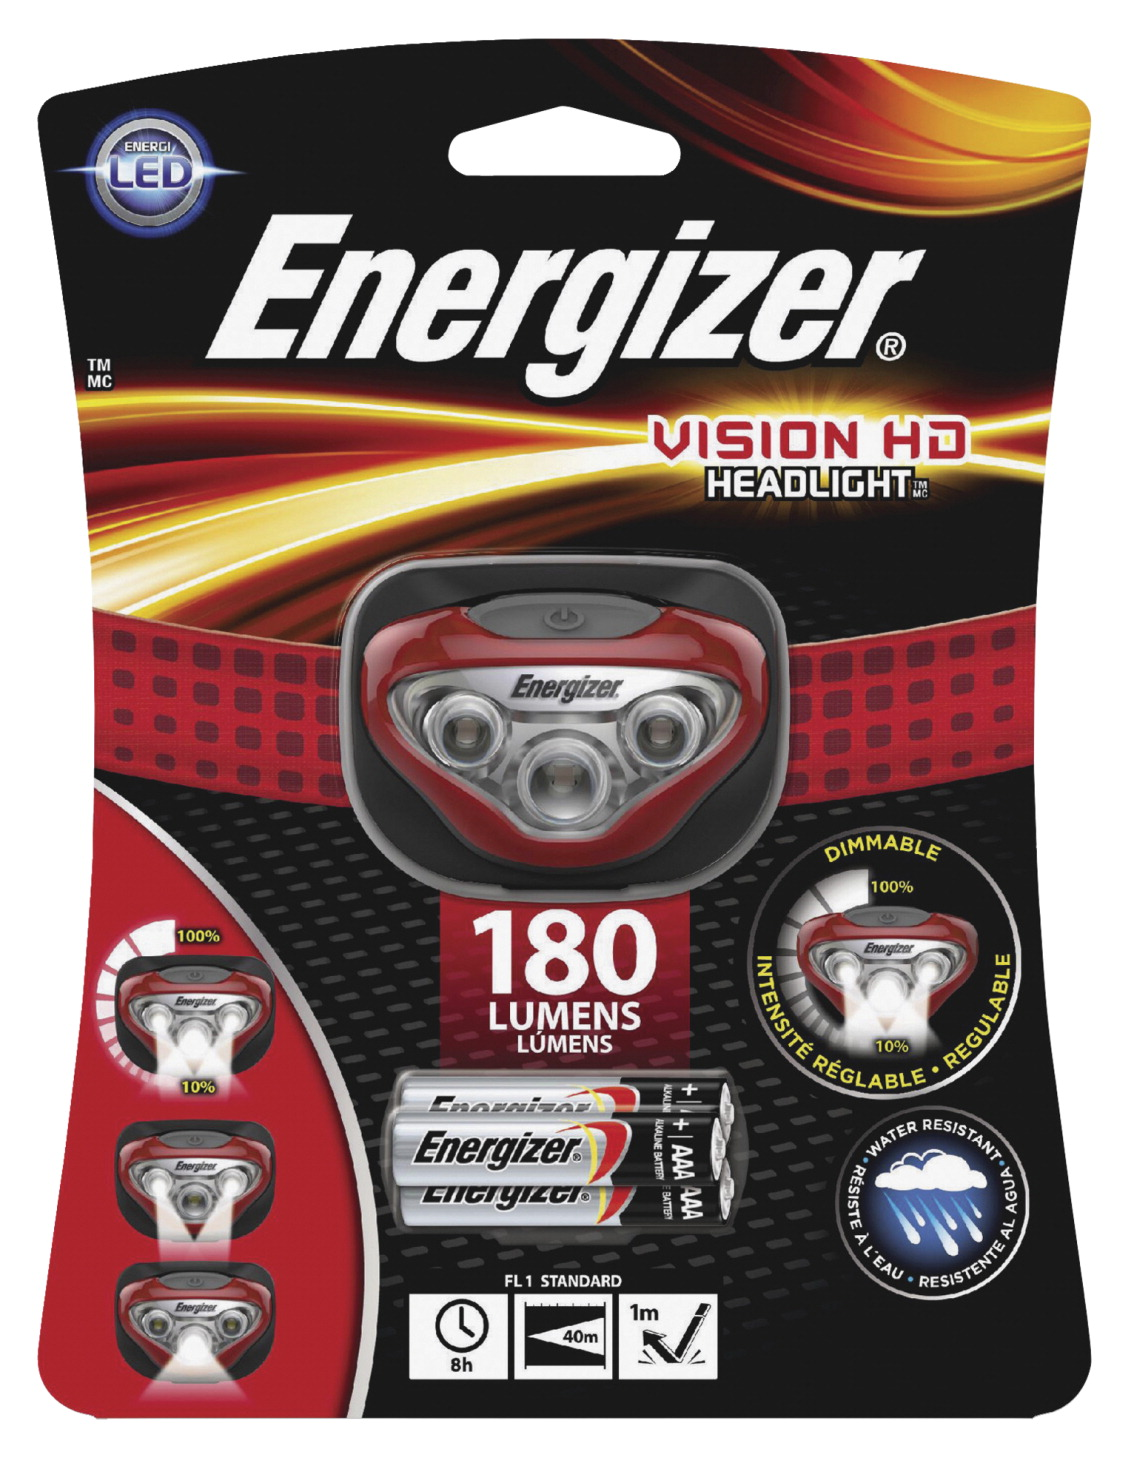 Energizer LED Vision HD Headlight, 150 Lumens, Red